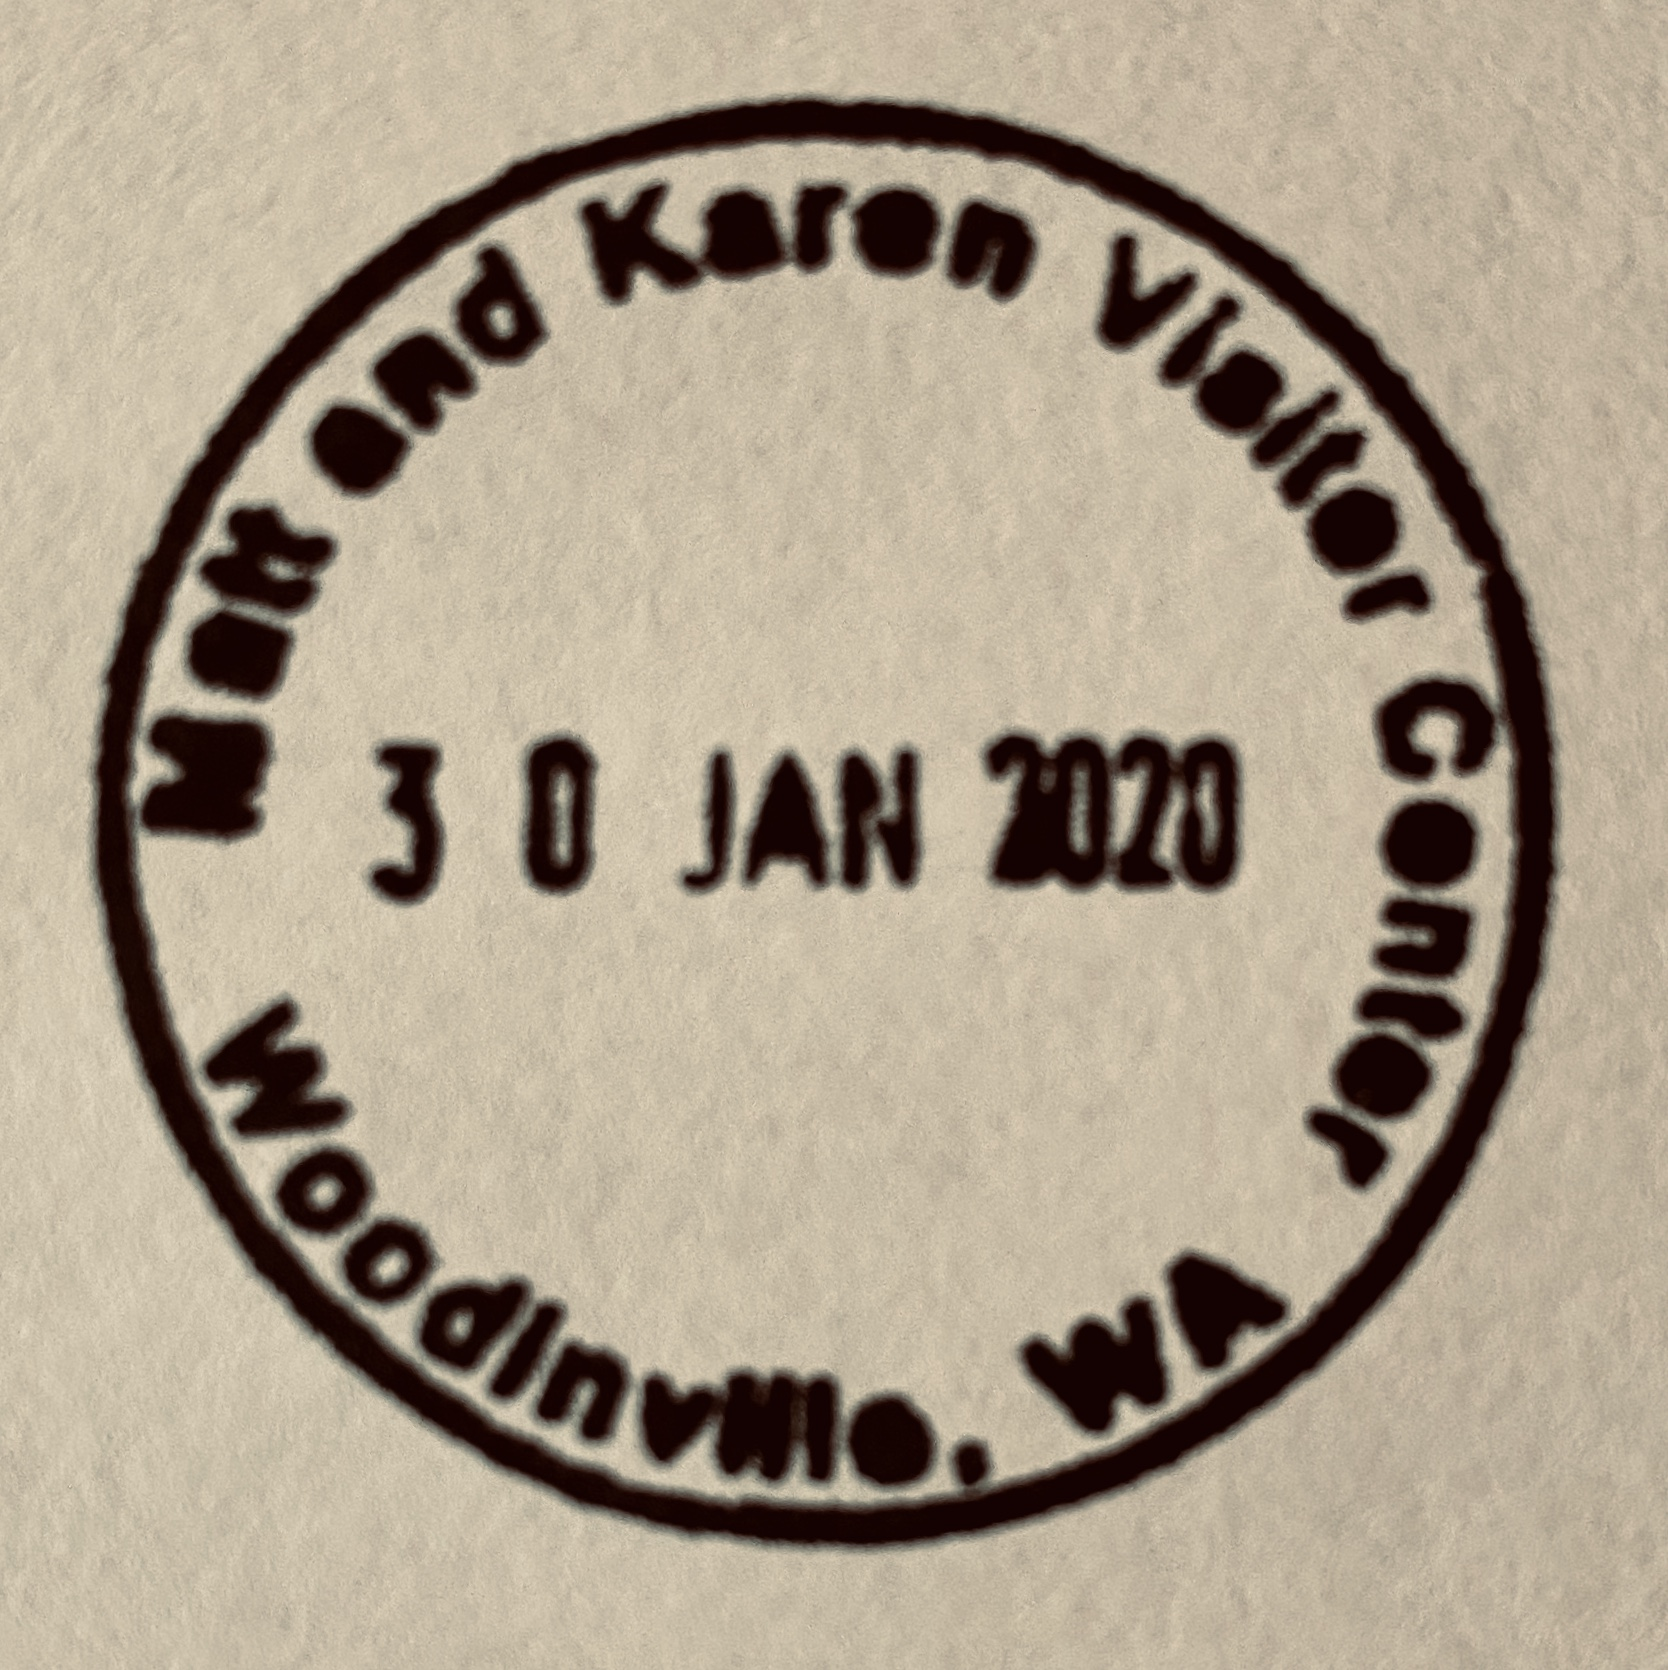 Our visitor center stamp